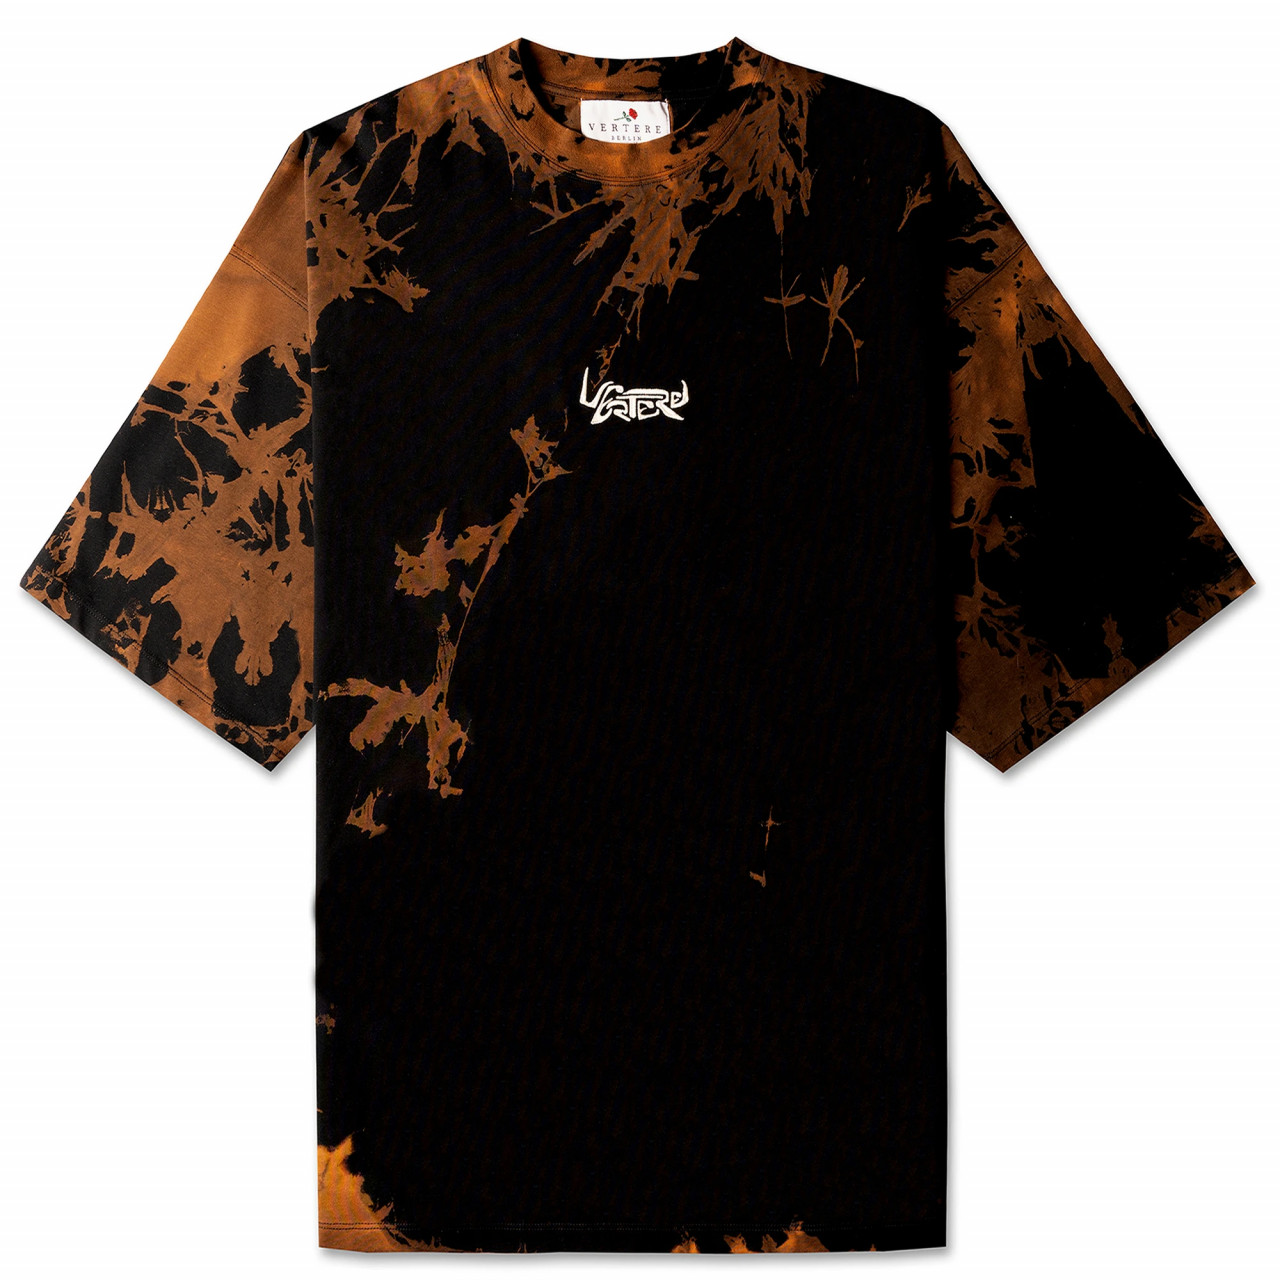 ULTRA HEAVY OVERSIZE SPACE T-SHIRT